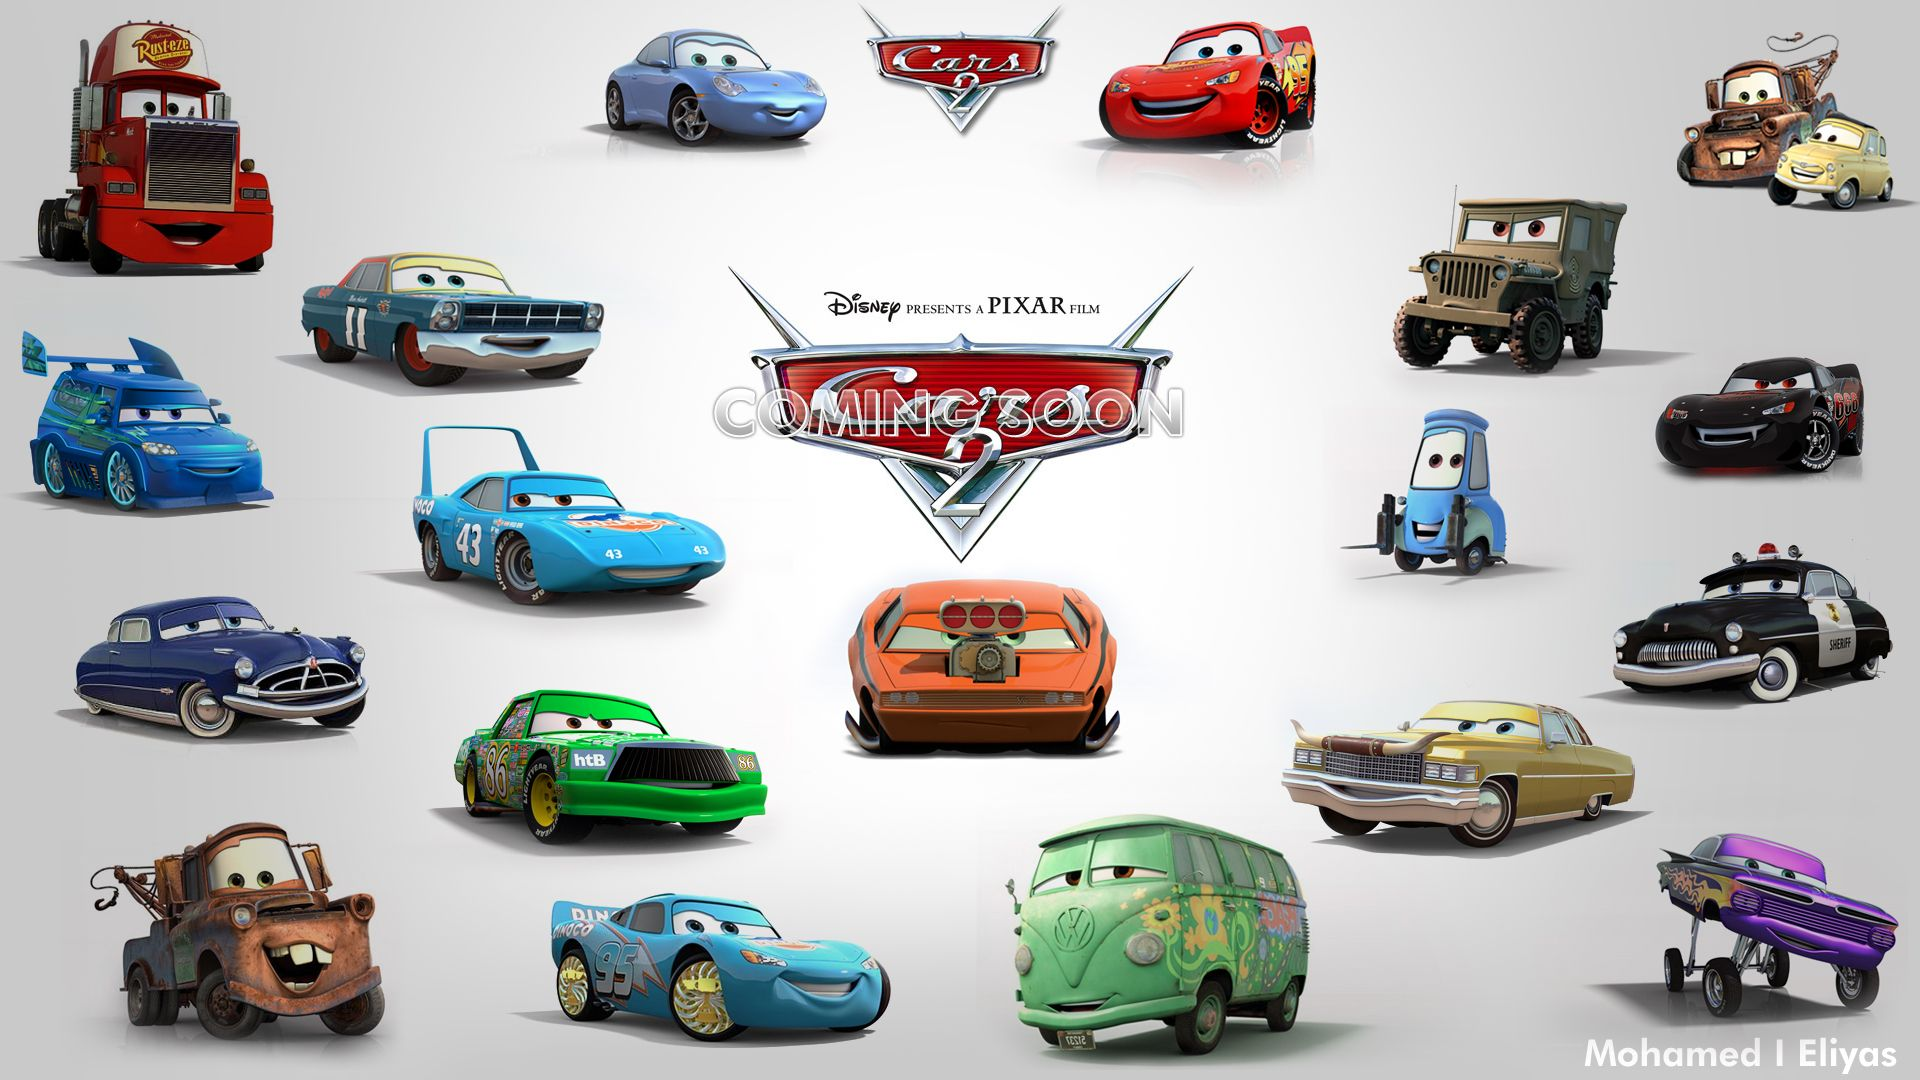 All Cars Characters Pixar Cars 2 characters by